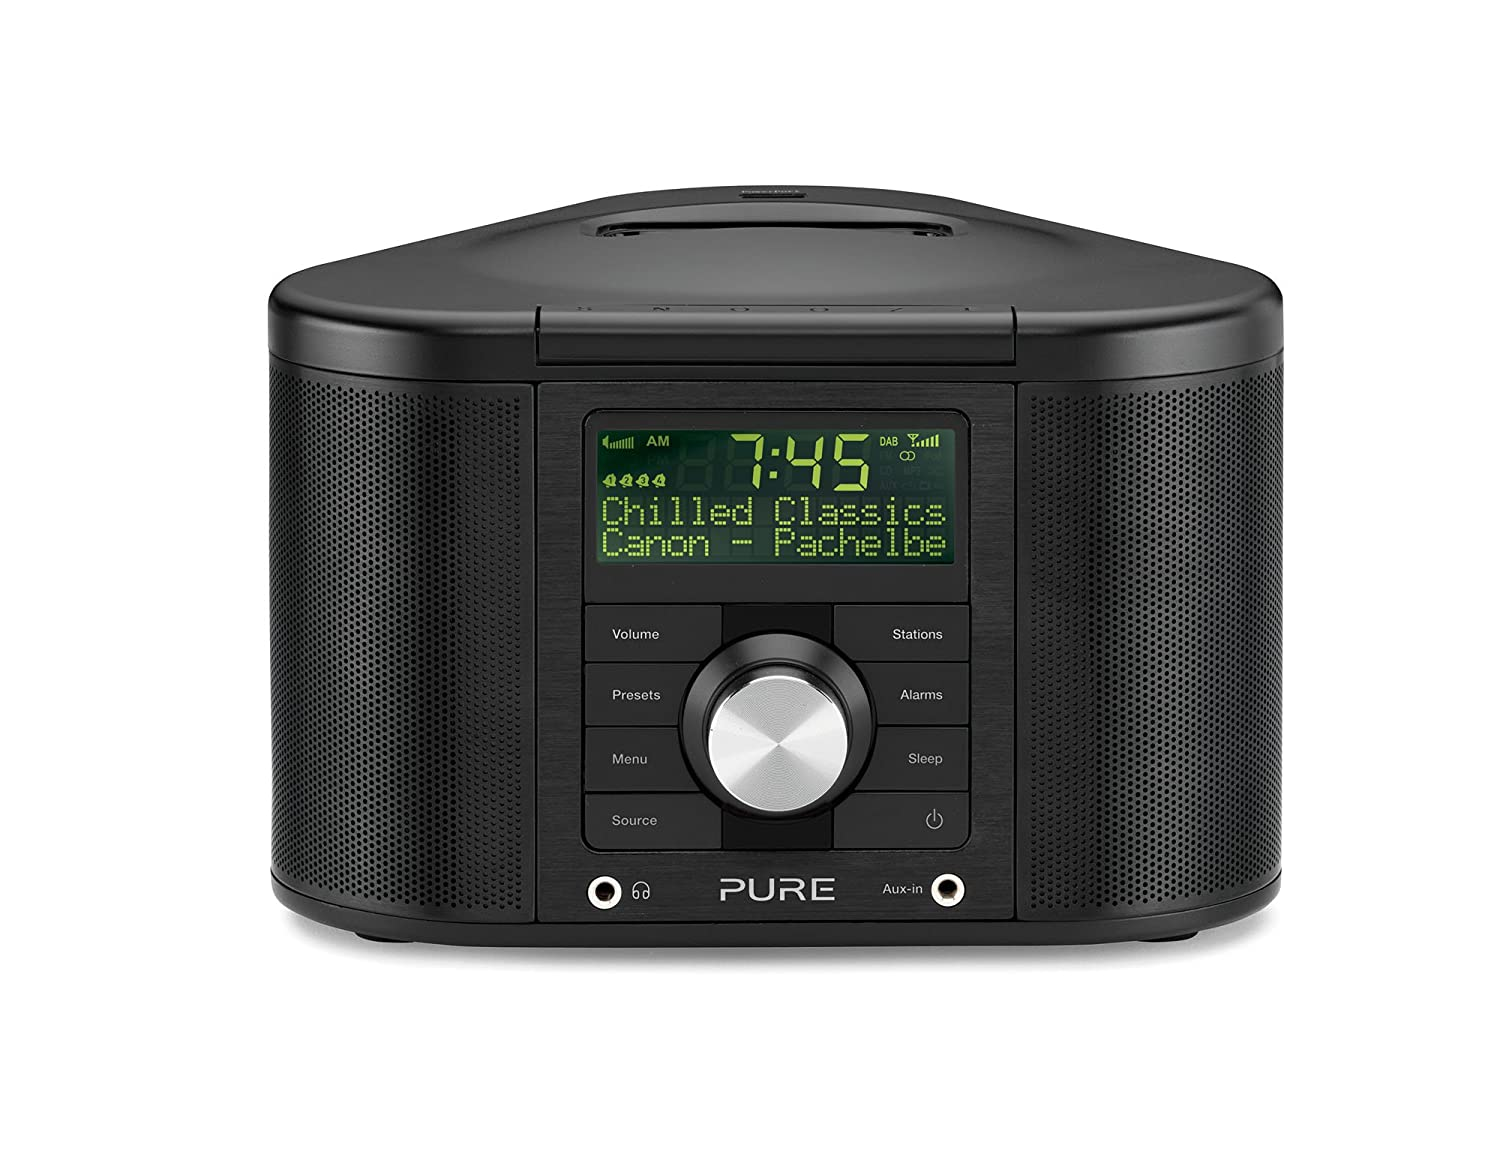 pure digital chronos idock series ii alarm clock dab radio iphone ipod dock ebay. Black Bedroom Furniture Sets. Home Design Ideas